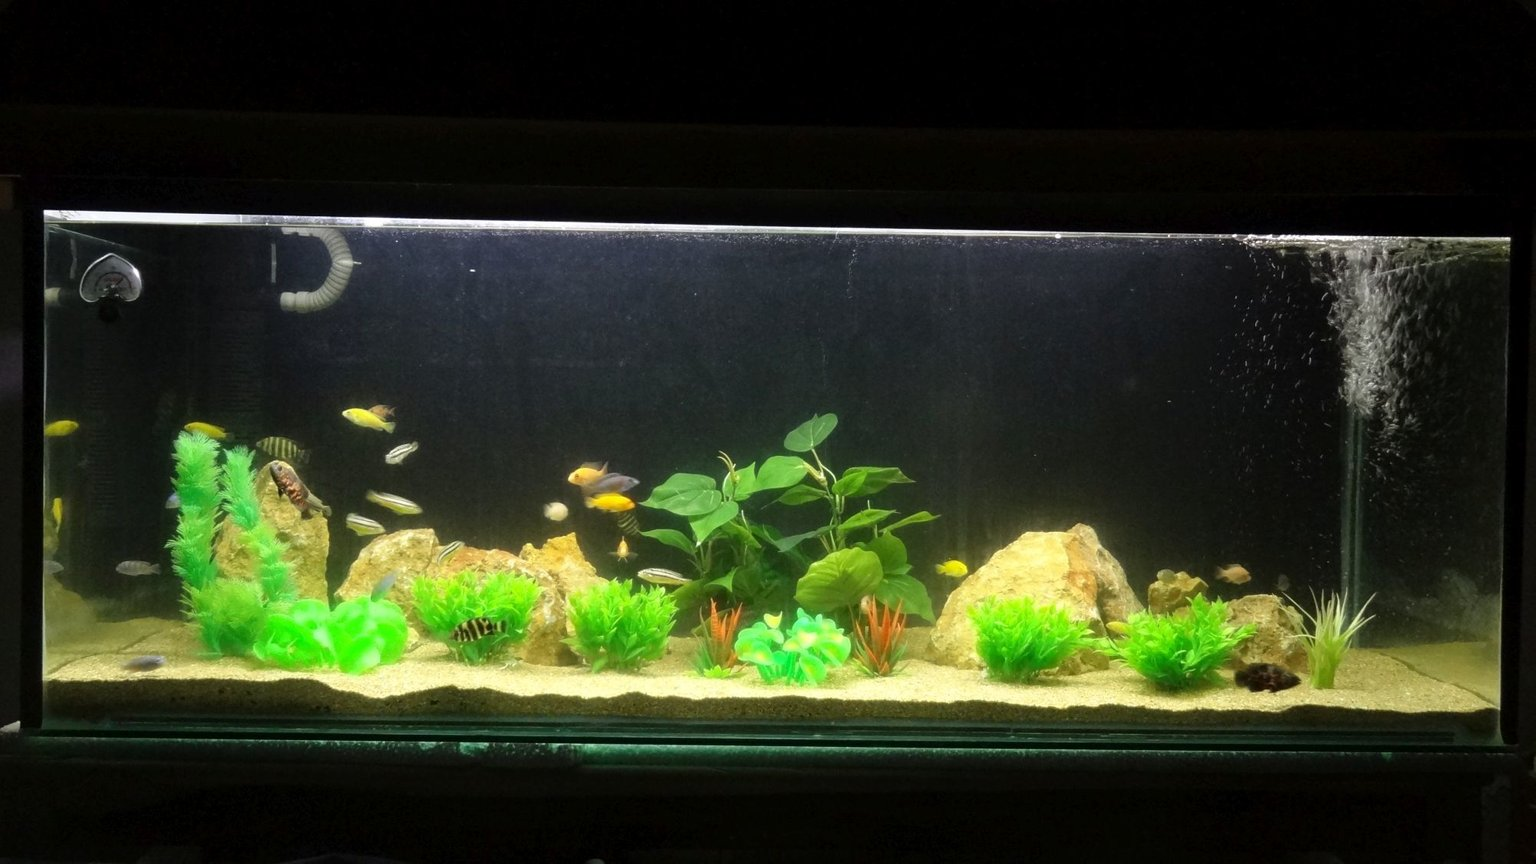 120 gallons freshwater fish tank (mostly fish and non-living decorations) - 60 inch long, 18 inch wide, 24 inch hight, sump filtration and submersible filtration, sea sand, rocks